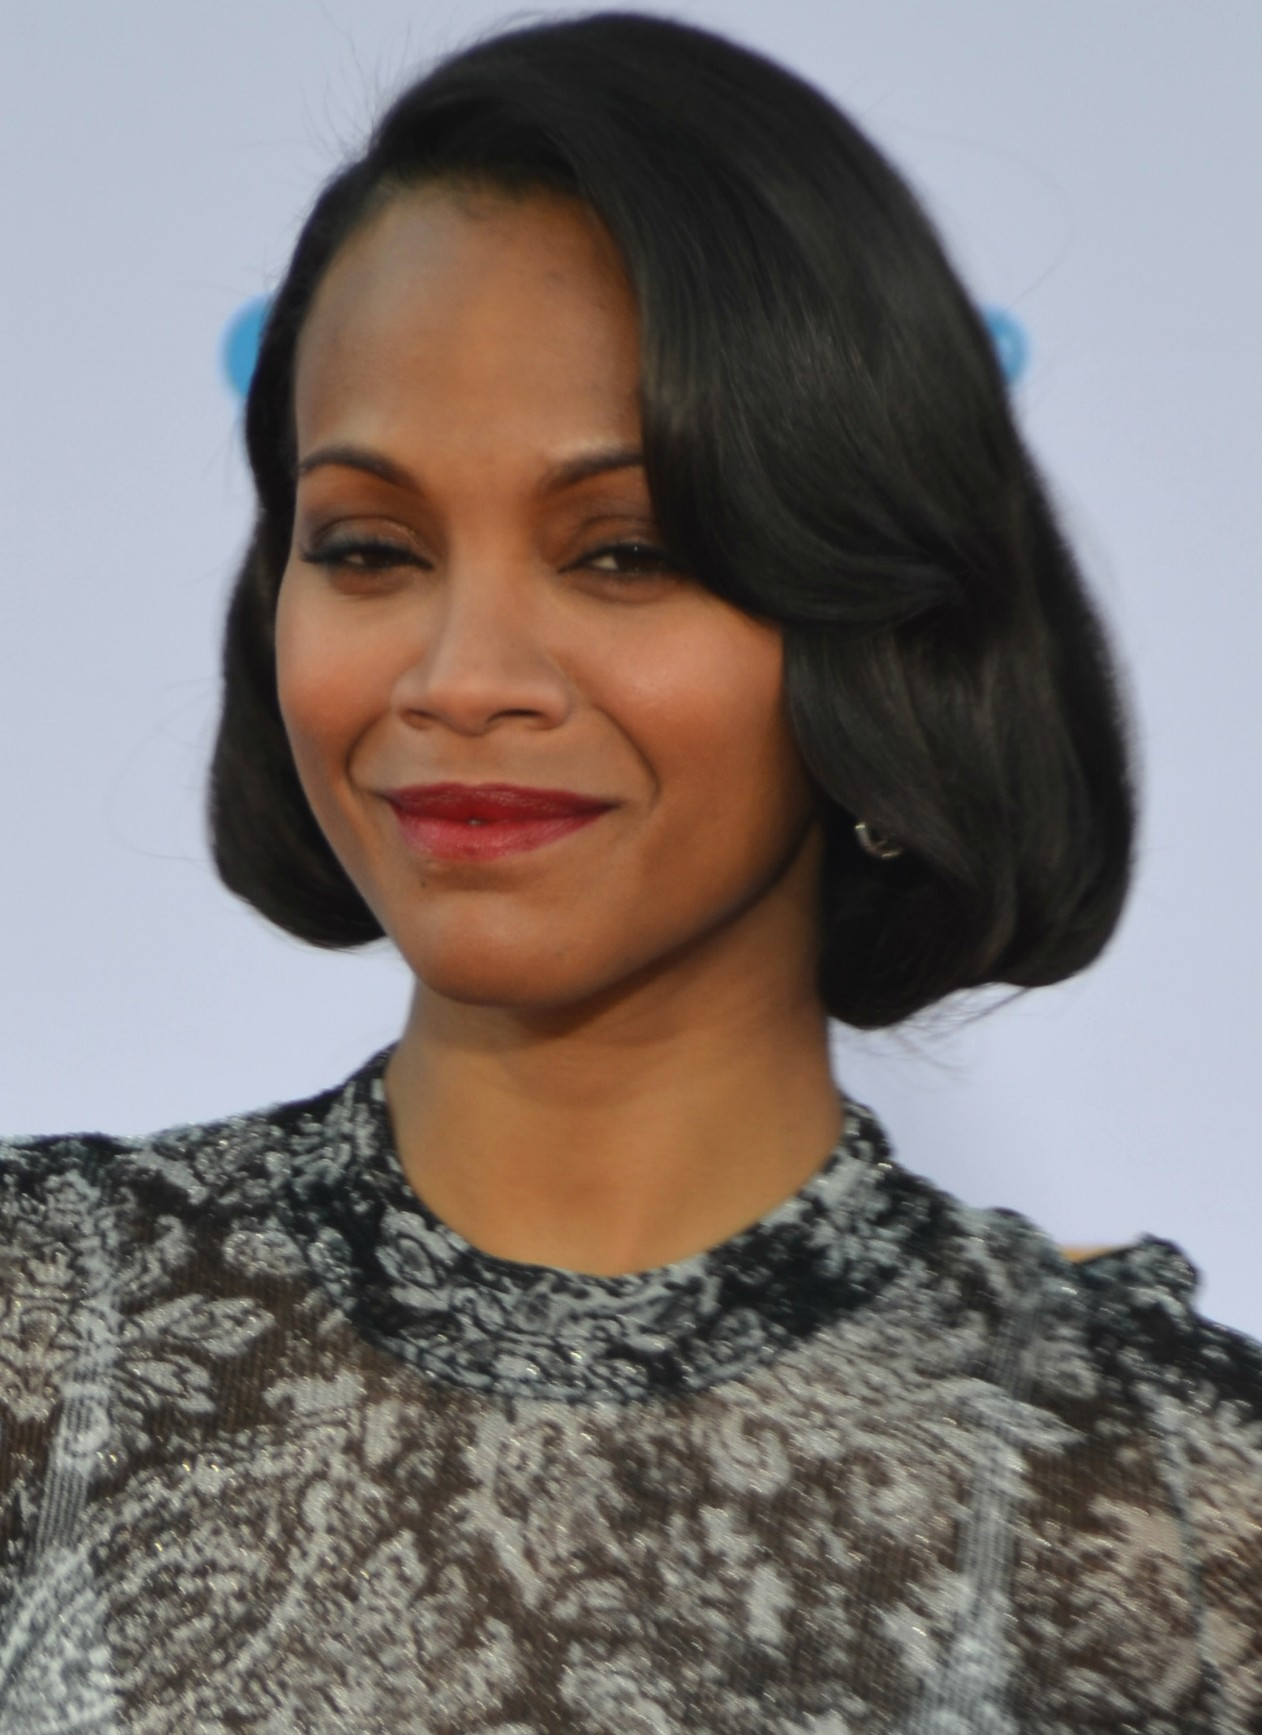 zoe saldana pngzoe saldana gif, zoe saldana avatar, zoe saldana 2016, zoe saldana vk, zoe saldana gif hunt, zoe saldana style, zoe saldana фильмы, zoe saldana marco perego, zoe saldana фото, zoe saldana wiki, zoe saldana star trek, zoe saldana movies, zoe saldana hot photo, zoe saldana sisters, zoe saldana legend, zoe saldana кинопоиск, zoe saldana 2017, zoe saldana png, zoe saldana wikipedia, zoe saldana twitter